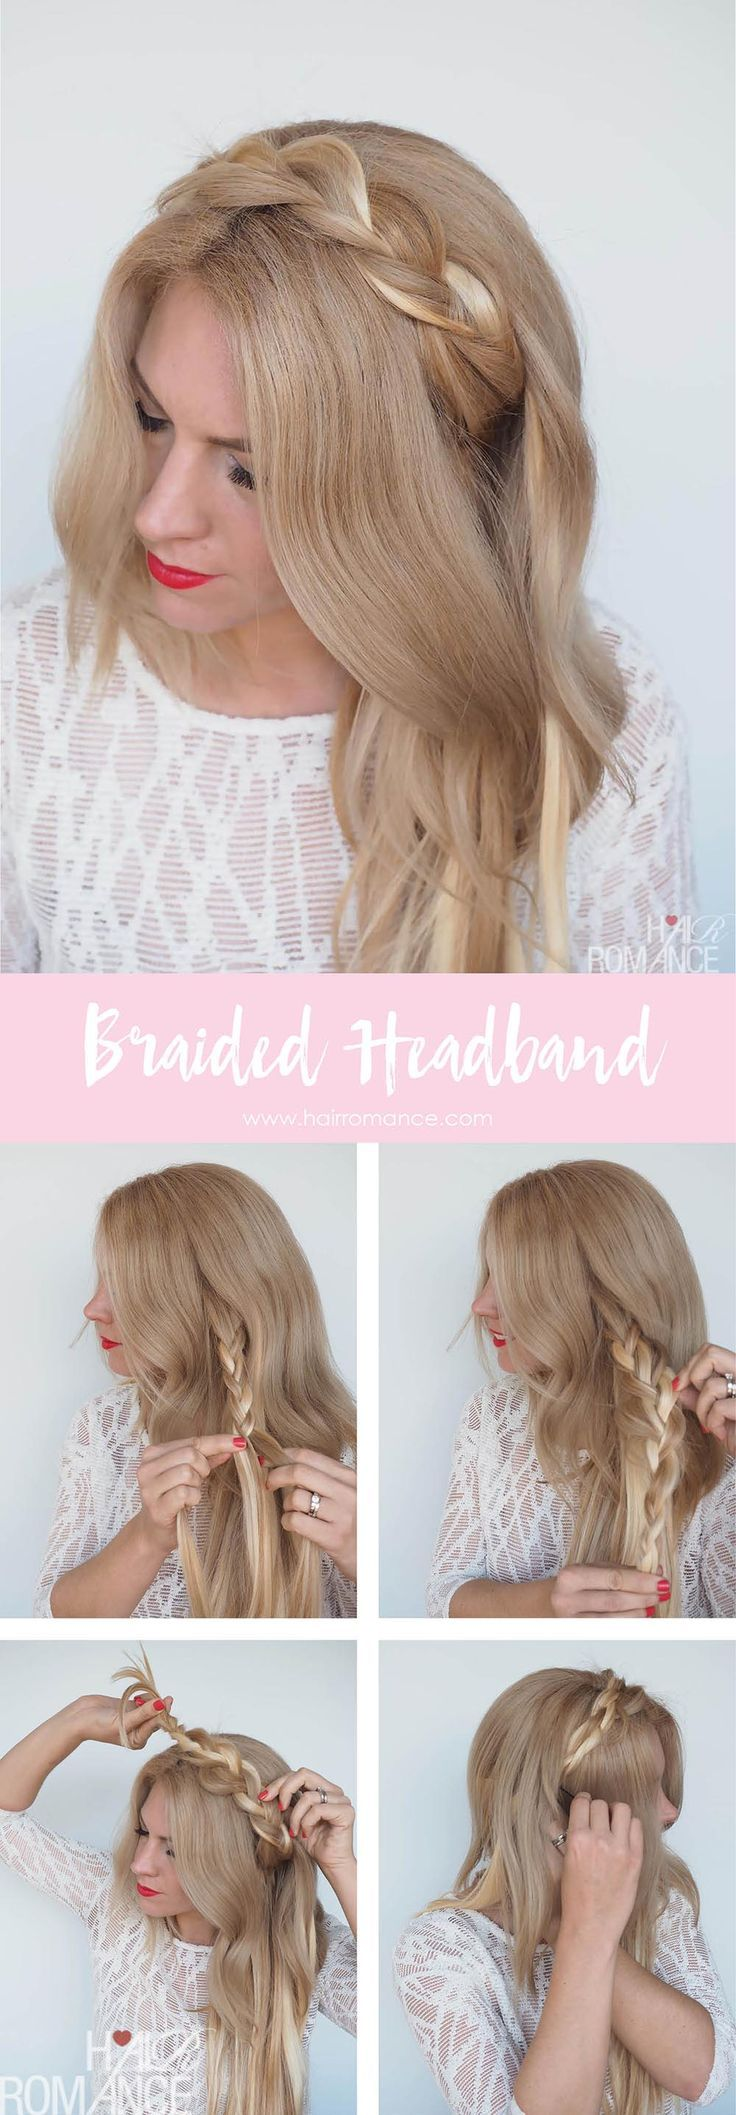 Simple Braided Hairstyles Glamorous Sweet  Simple Braided Hairstyle  Hair  Pinterest  Simple Braids